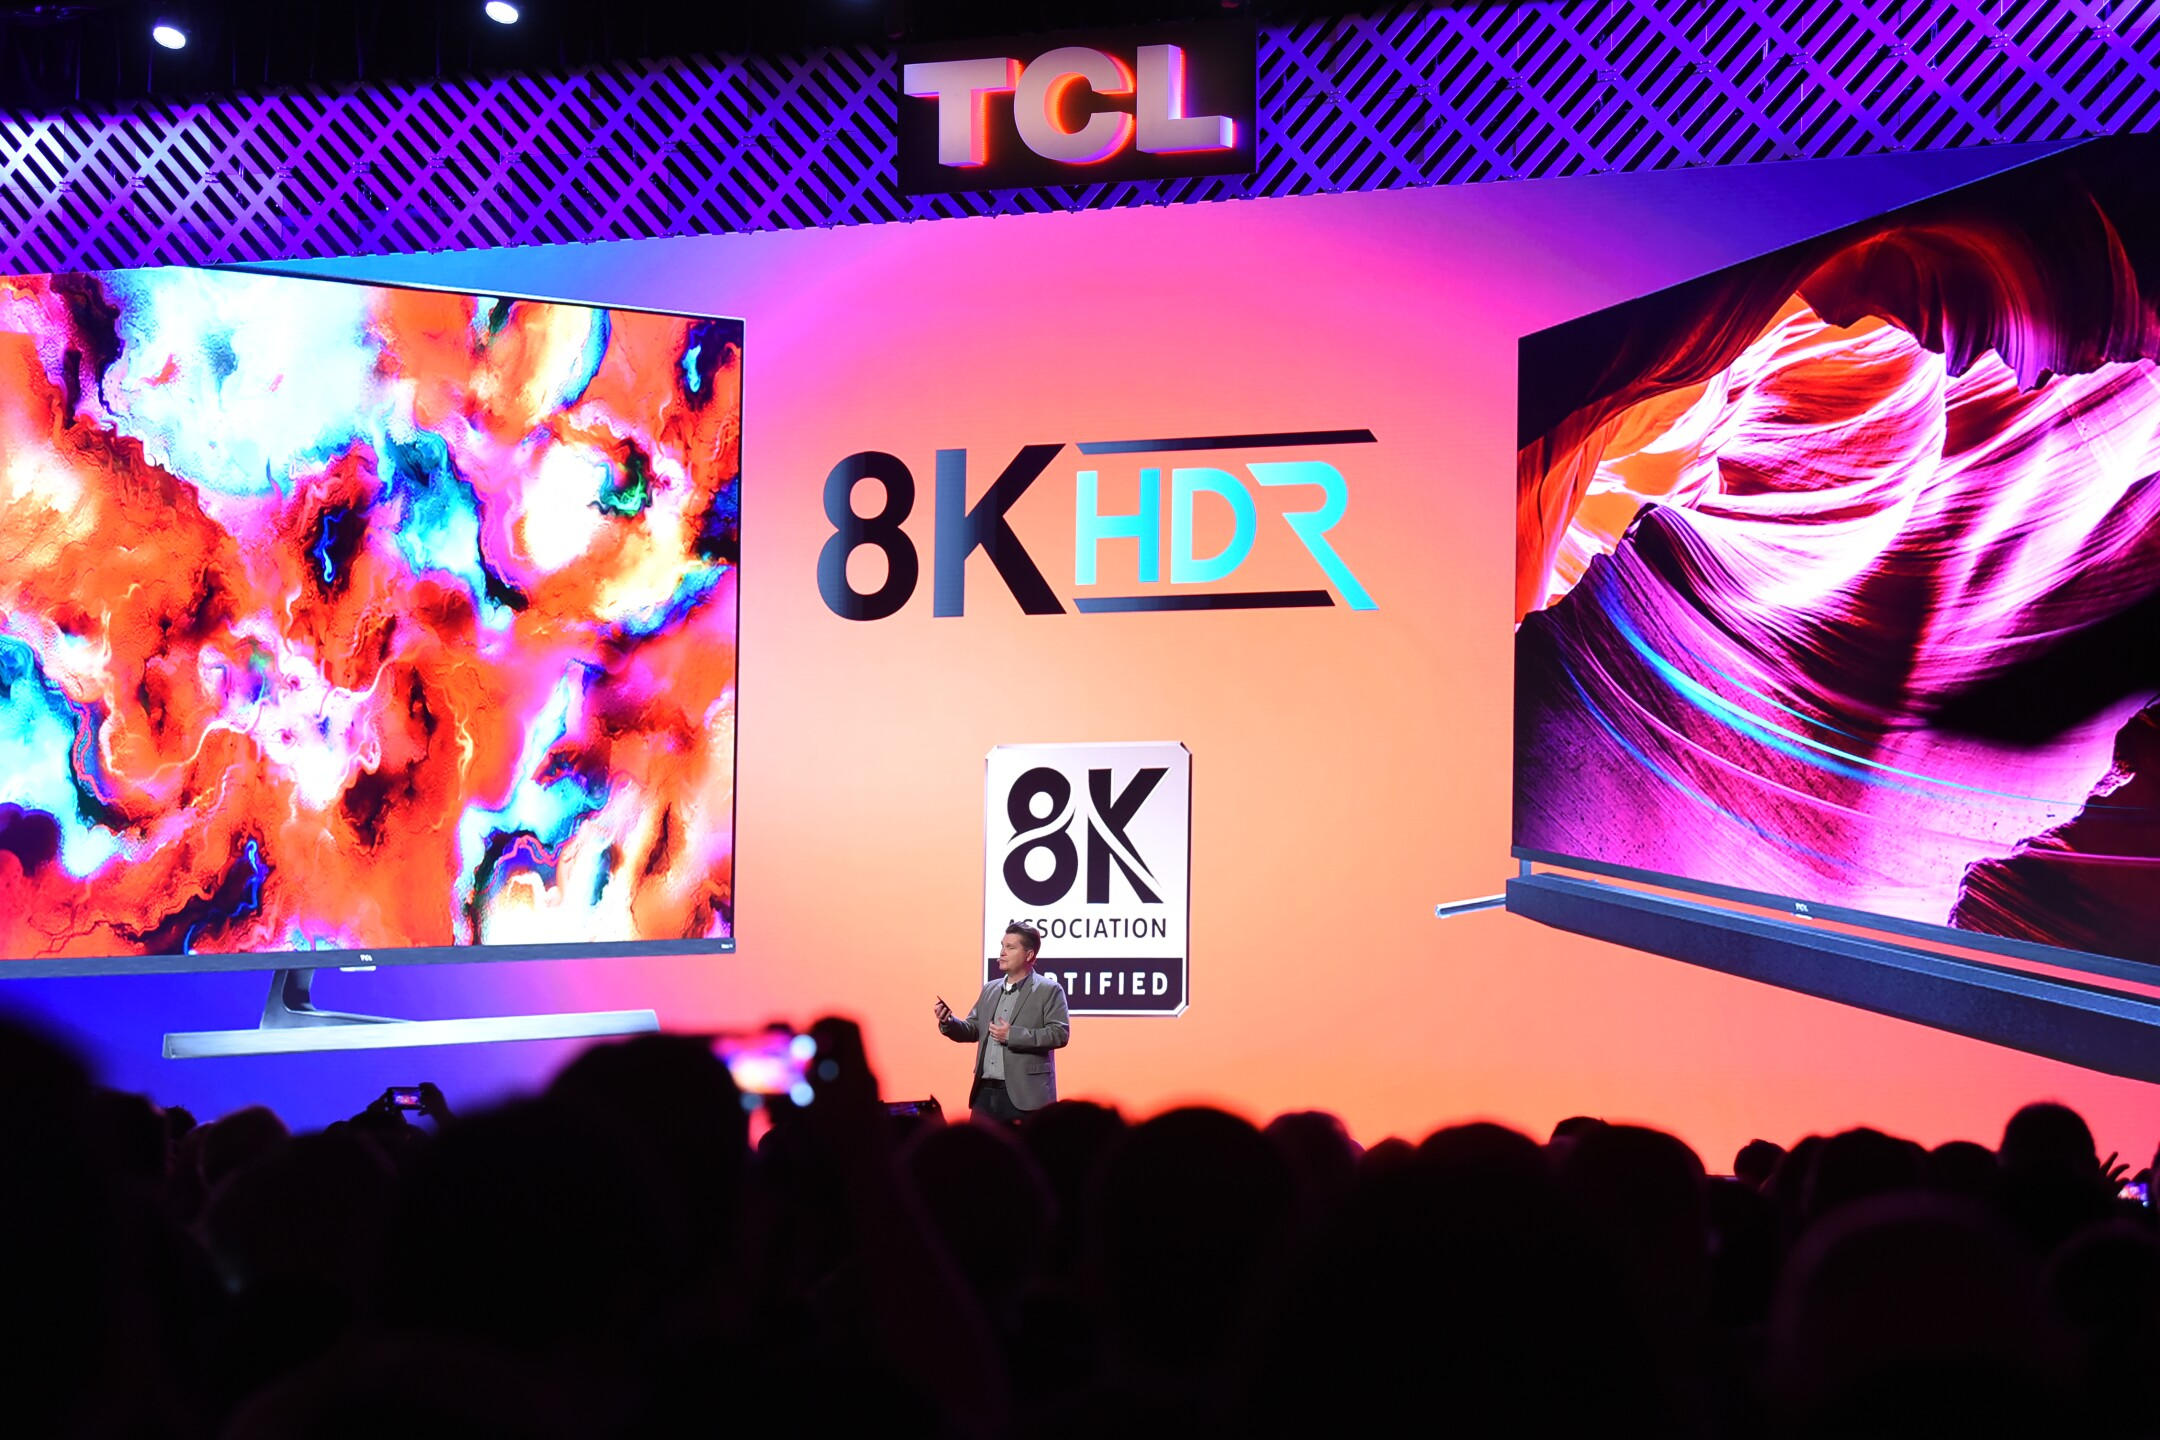 TCL_product.JPG